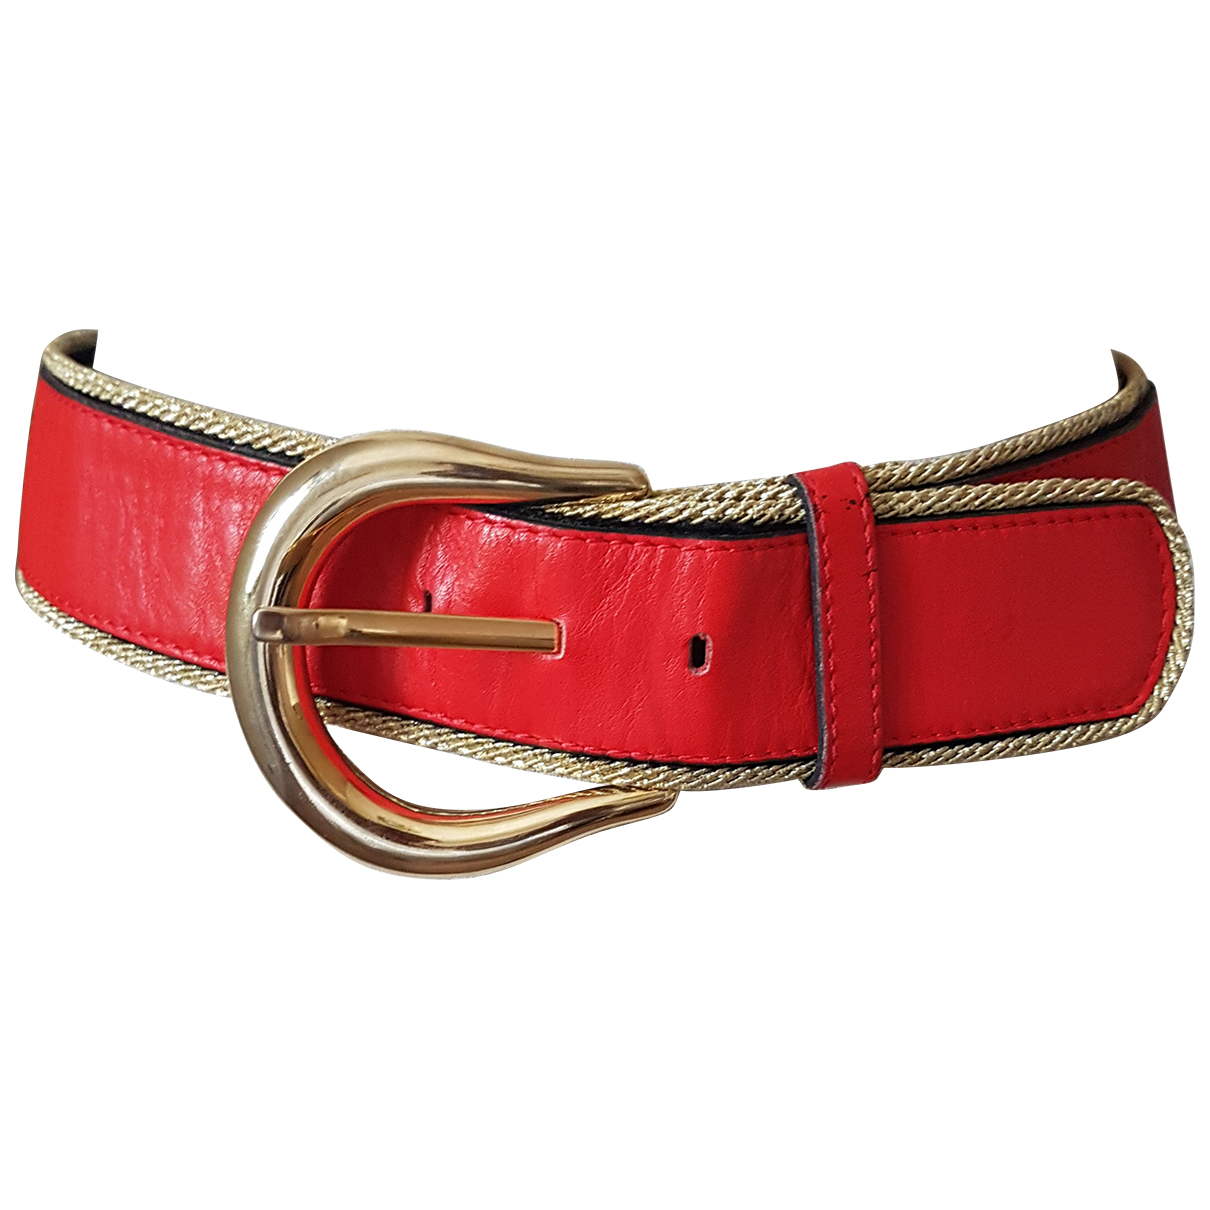 Yves Saint Laurent \N Guertel in  Rot Leder